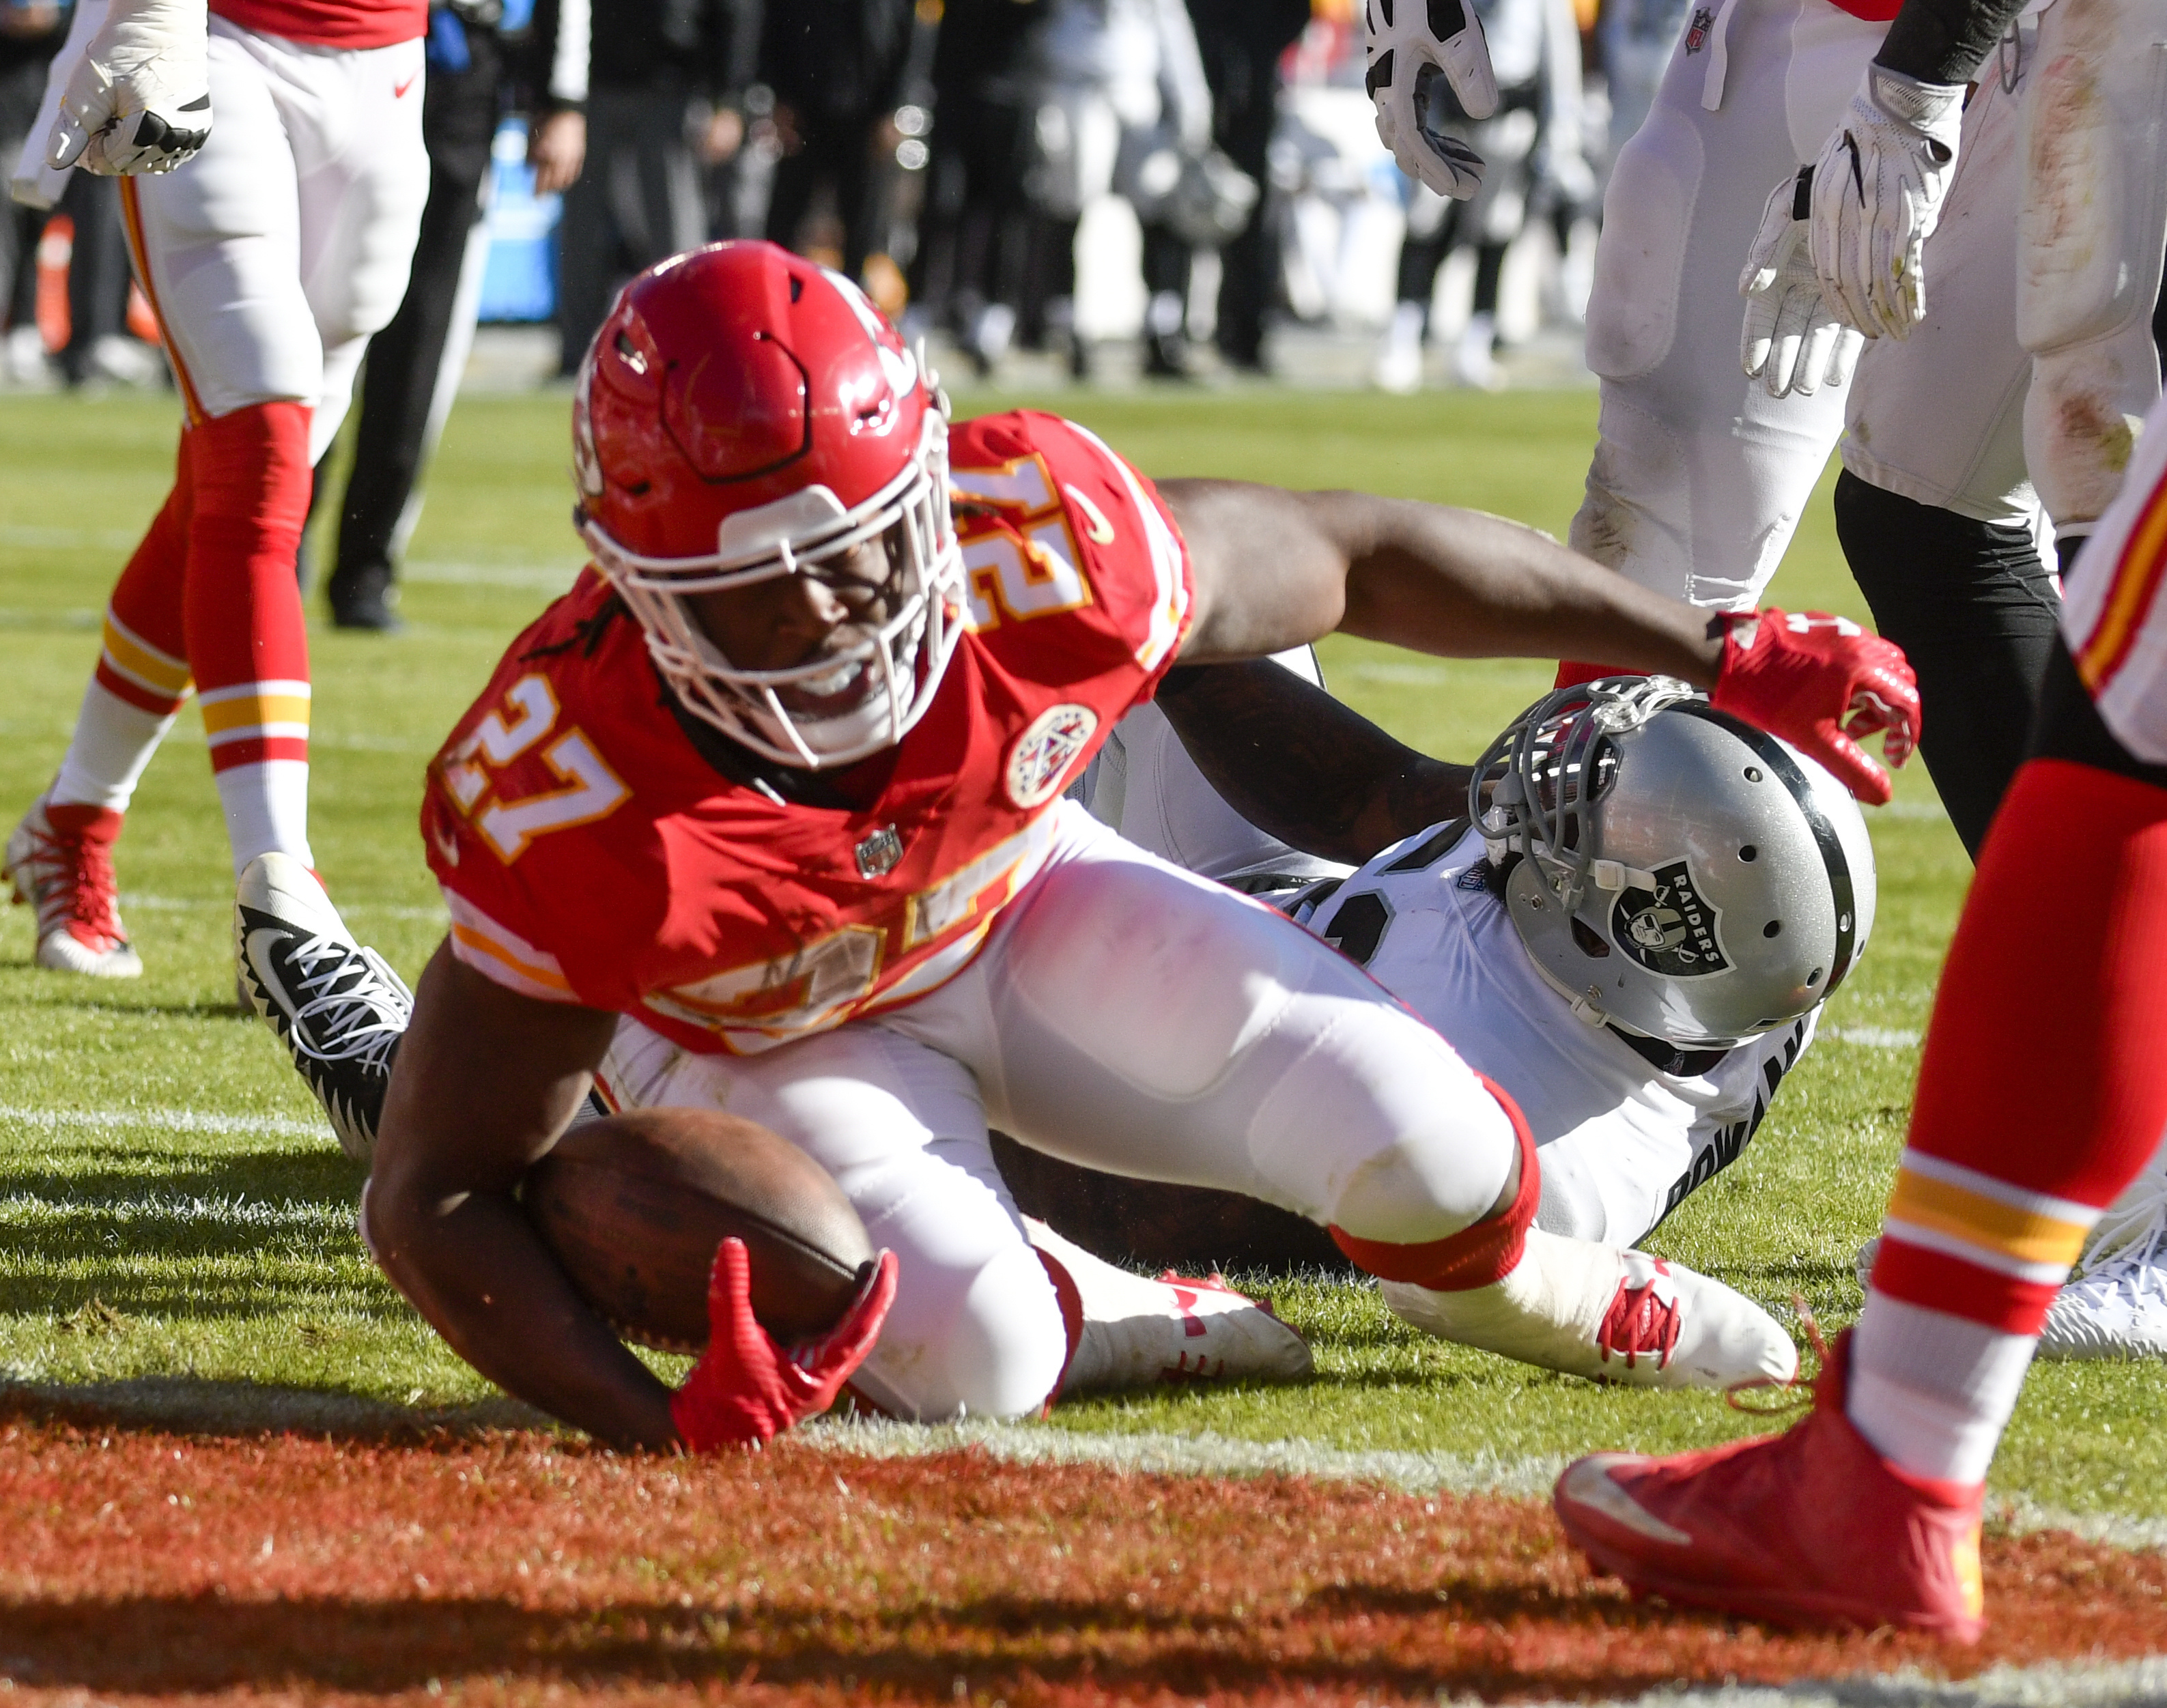 Kansas City Chiefs running back Kareem Hunt (27) scores on a one-yard run in front of Oakland Raiders linebacker NaVorro Bowman (53), during the first half of an NFL football game in Kansas City, Mo., Sunday, Dec. 10, 2017. (AP Photo/Ed Zurga)